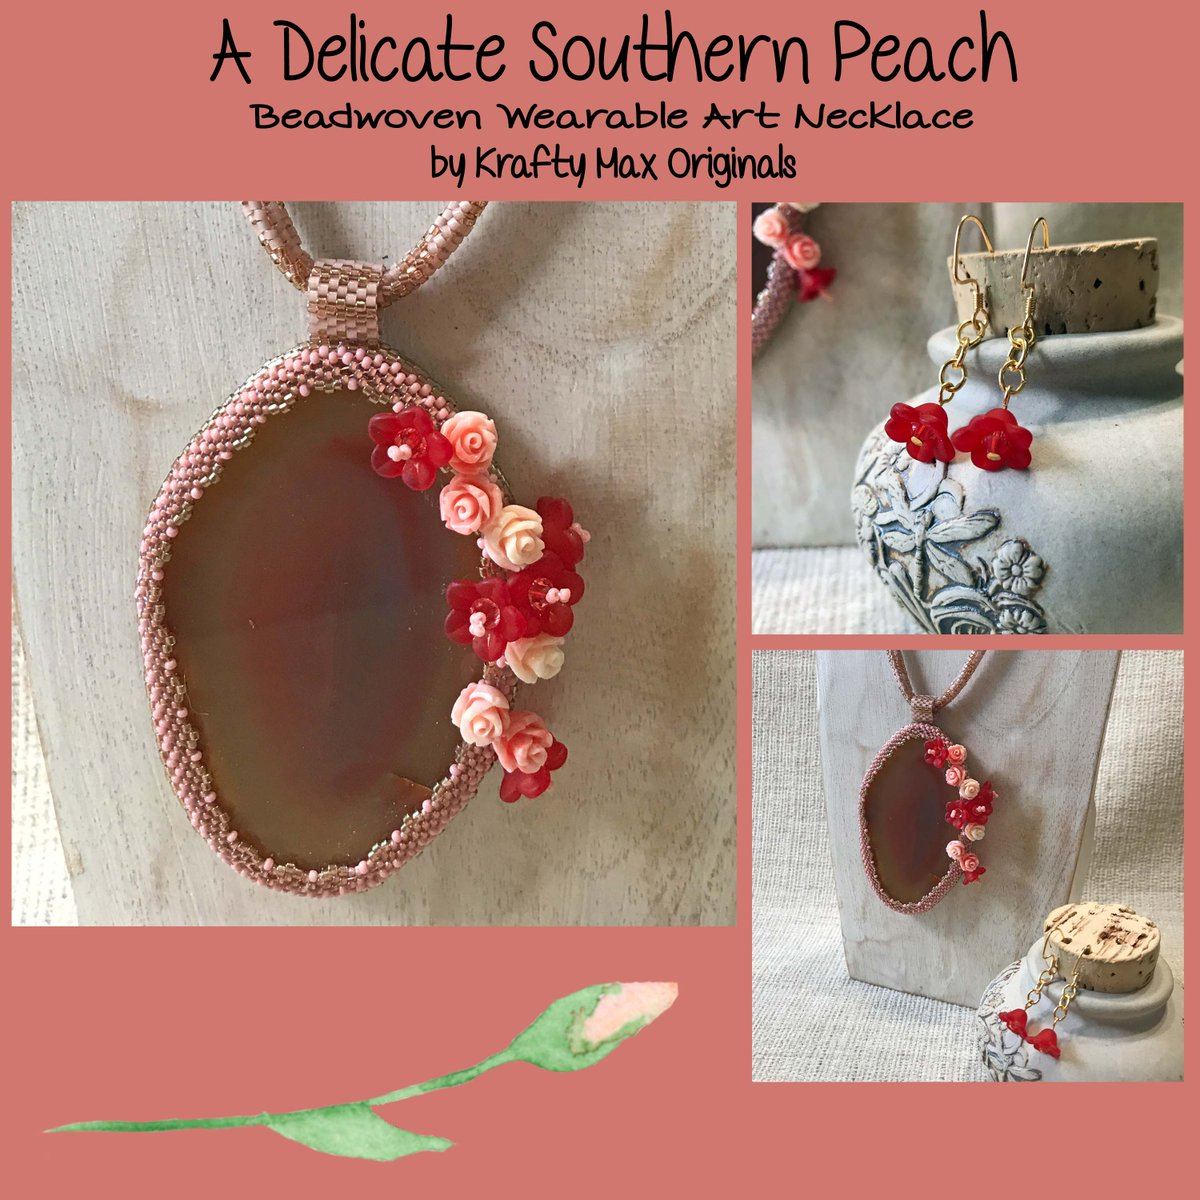 A Delicate Southern Peach Wearable Art Necklace Set (discounted from $146 down to $71)  #handmade #jewelry #buyhandmade #handmadelove #handcrafted #kraftymax #kmax #discount #sale #bargain #save #clearance